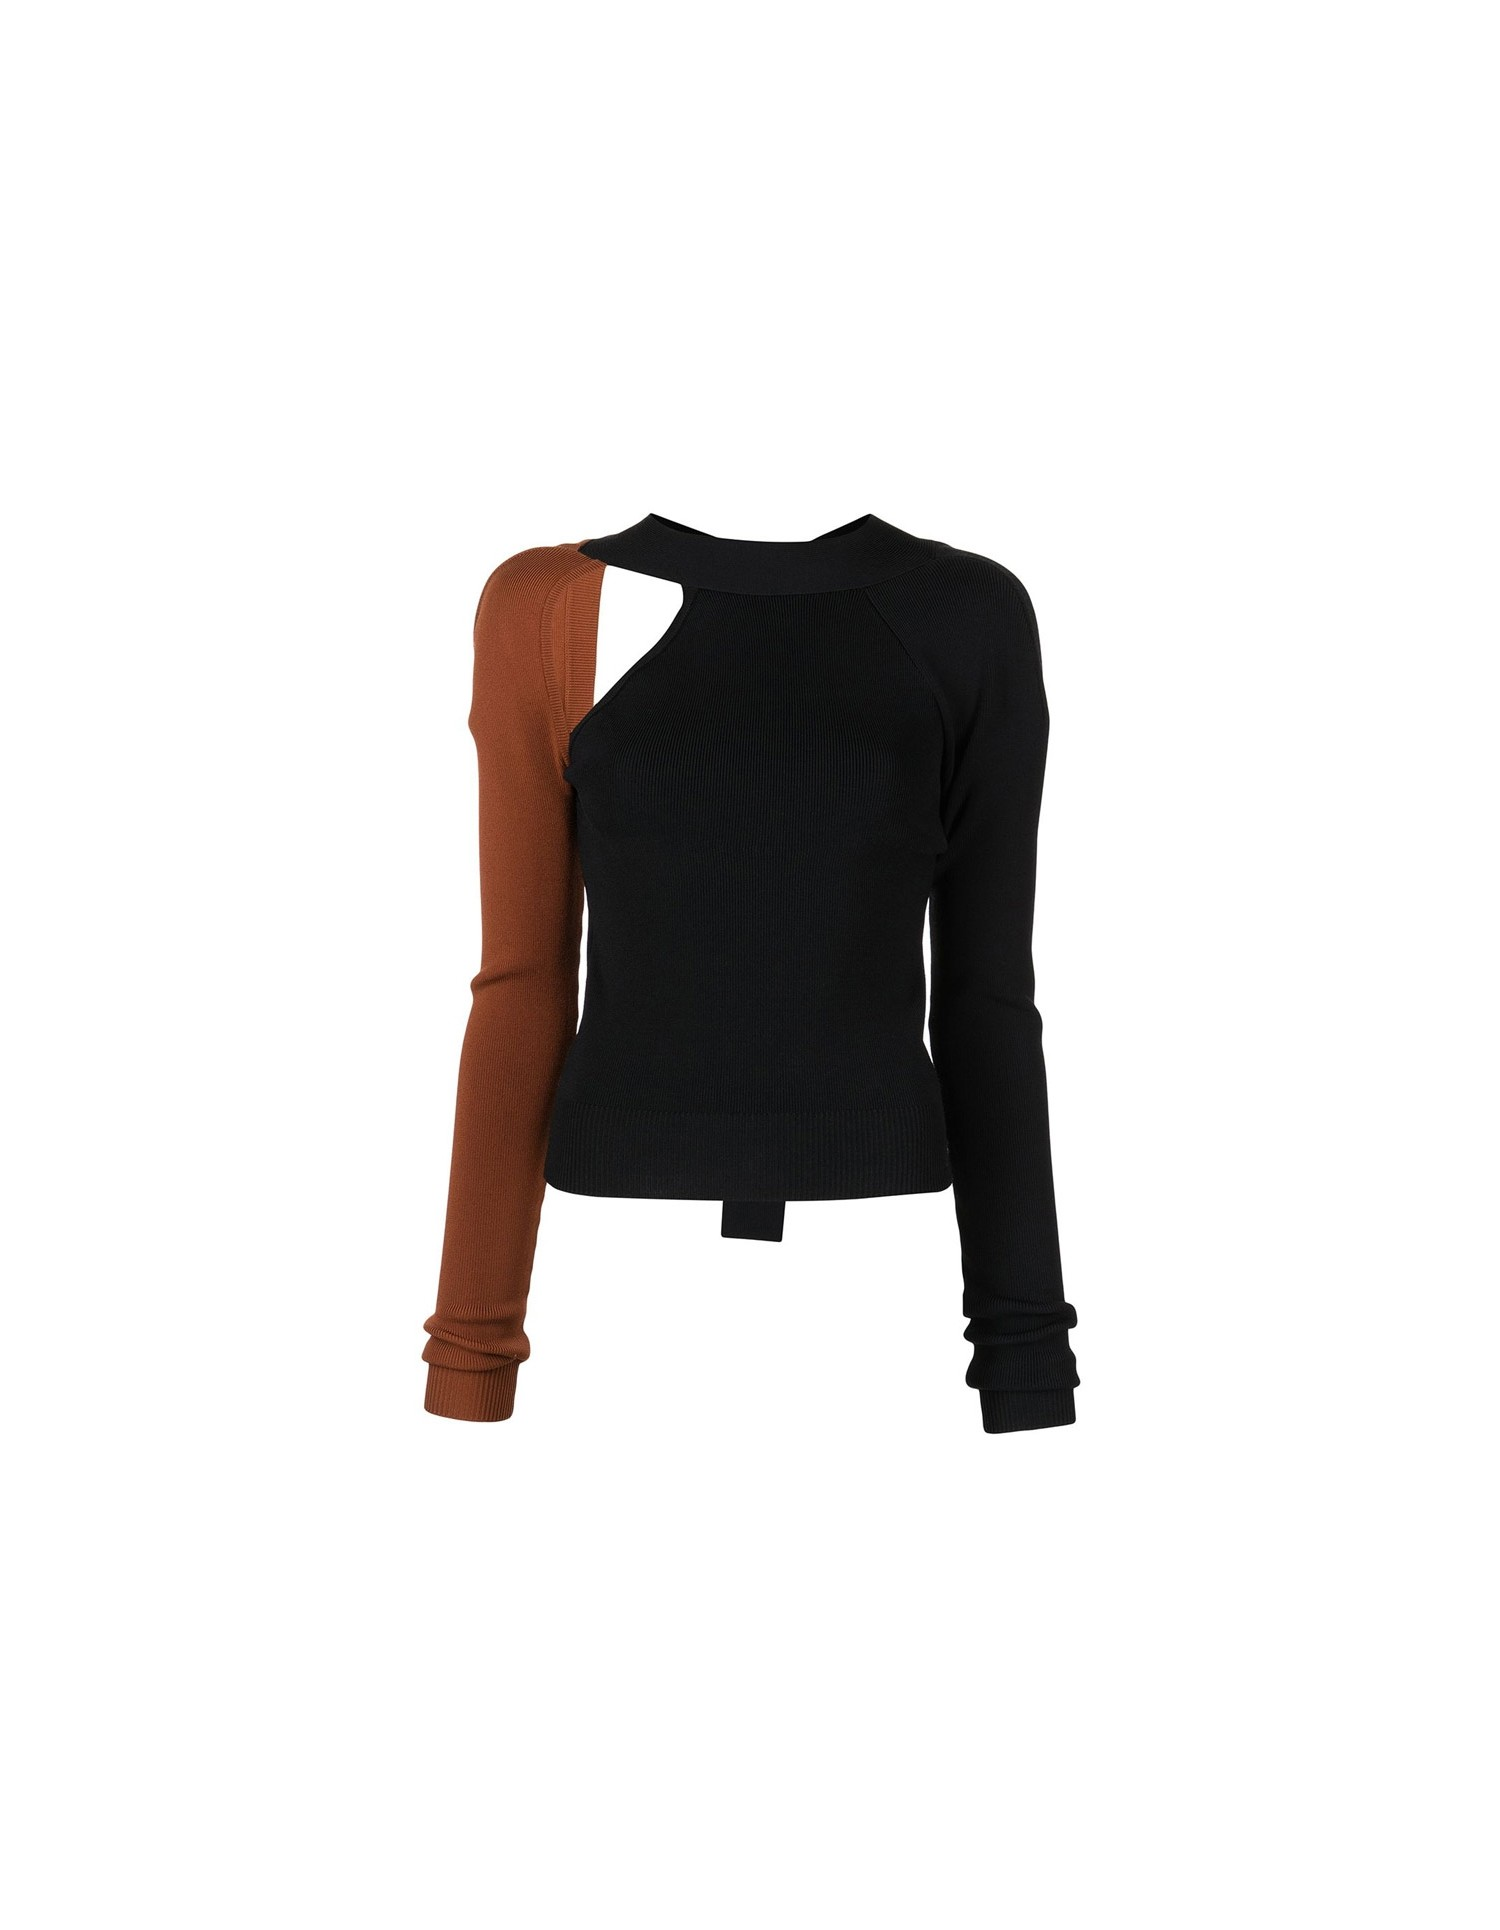 MONSE Bi Color Tie Back Knit Top on Model Full Front View